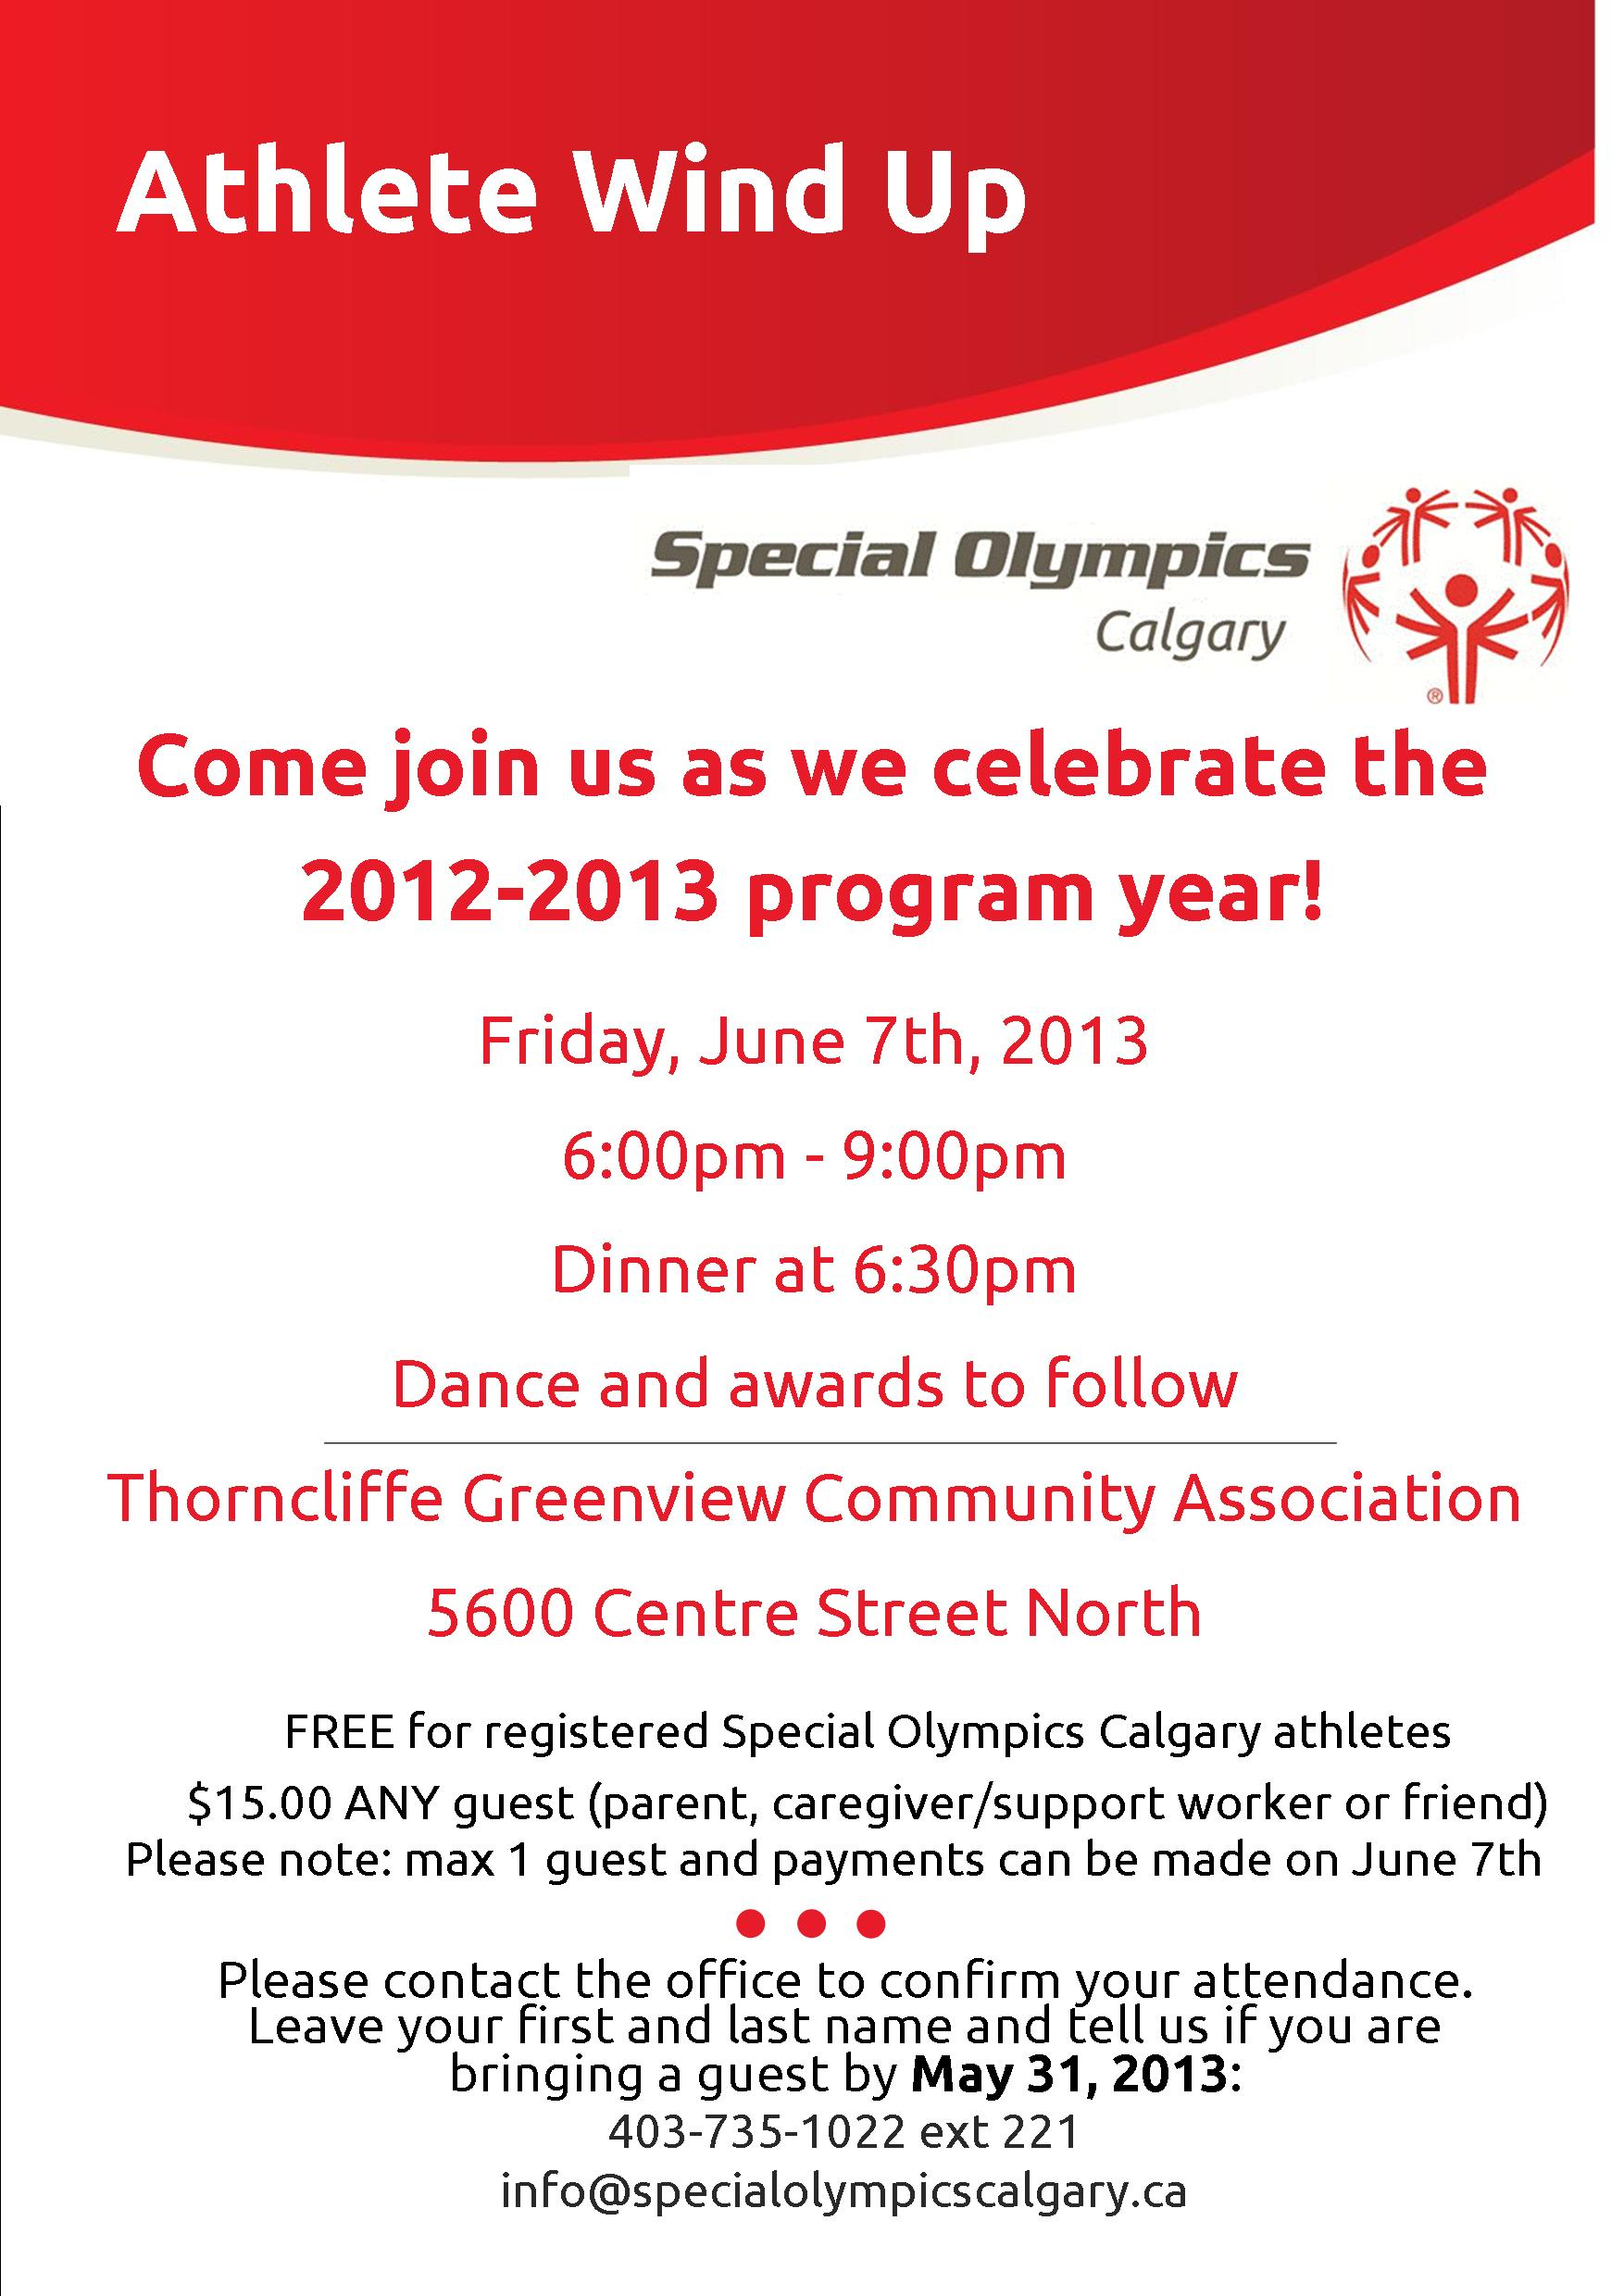 Holiday Calendar June 2013 June 2013 Calendar With Holidays United States Athlete Wind Up Special Olympics Calgary